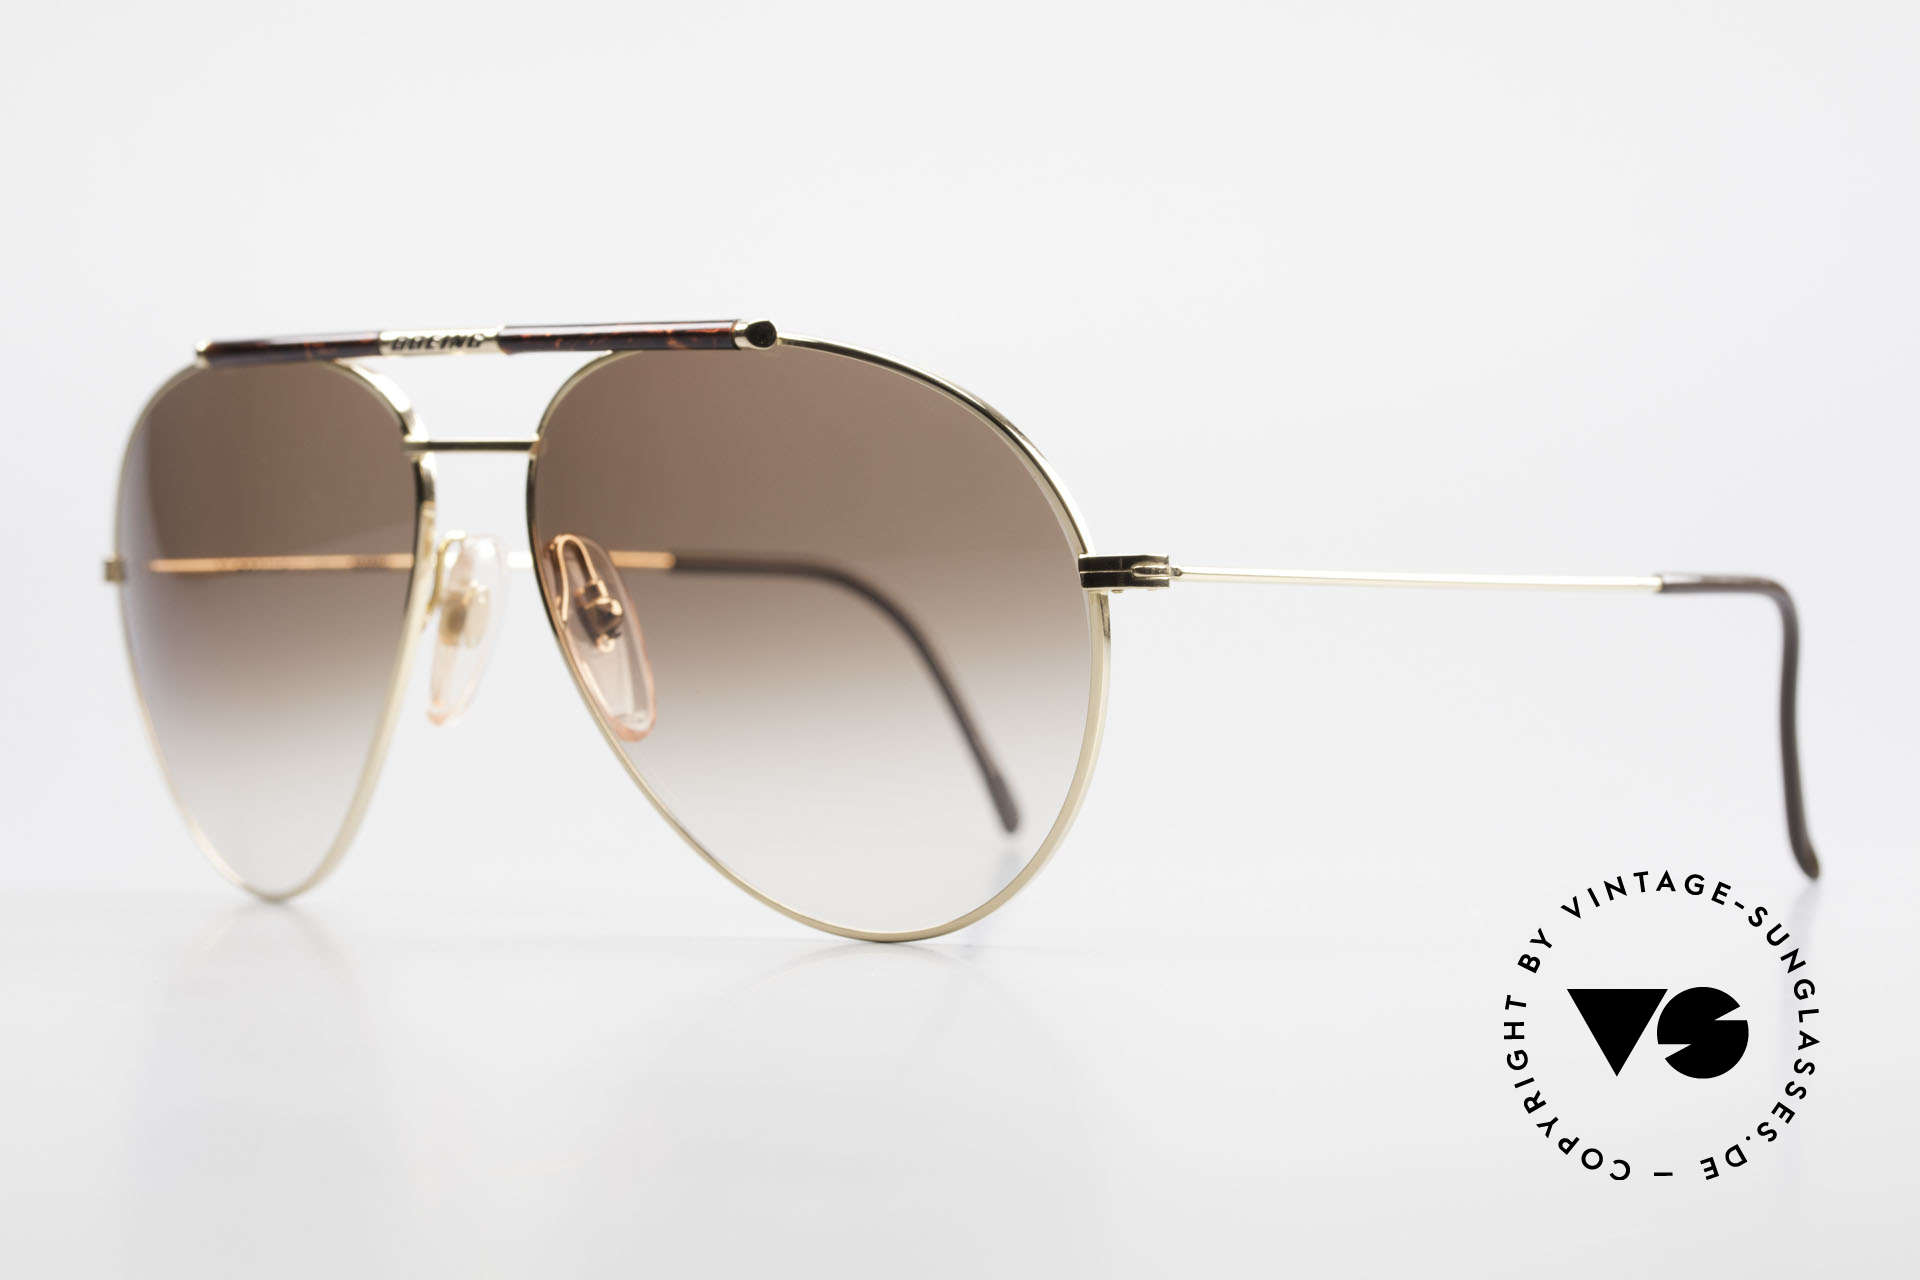 Boeing 5706 No Retro Glasses True Vintage, conspicuous bar with the prestigious Boeing label, Made for Men